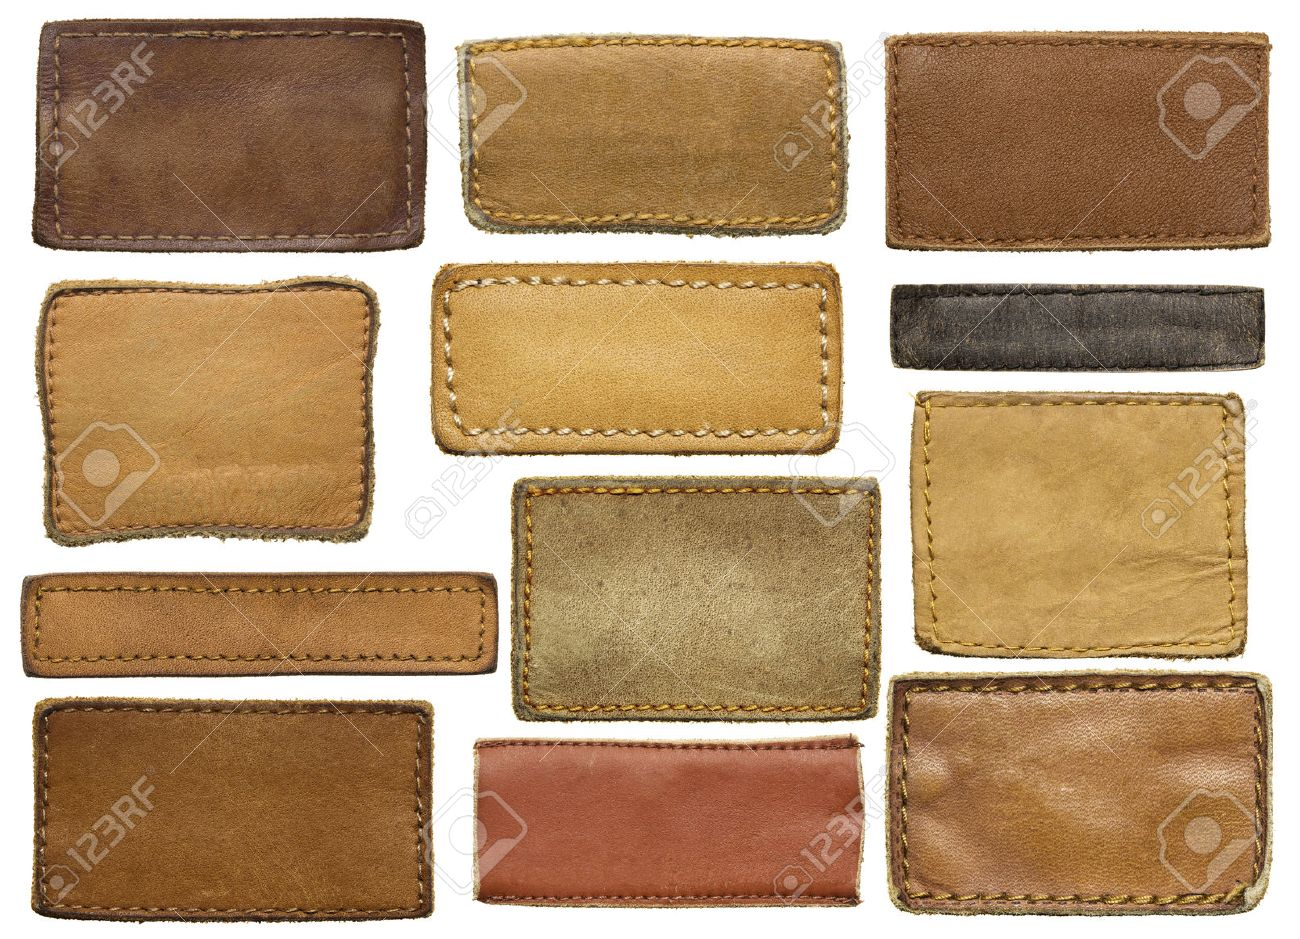 Leather jeans labels, leather tags. Stock Photo - 34178847